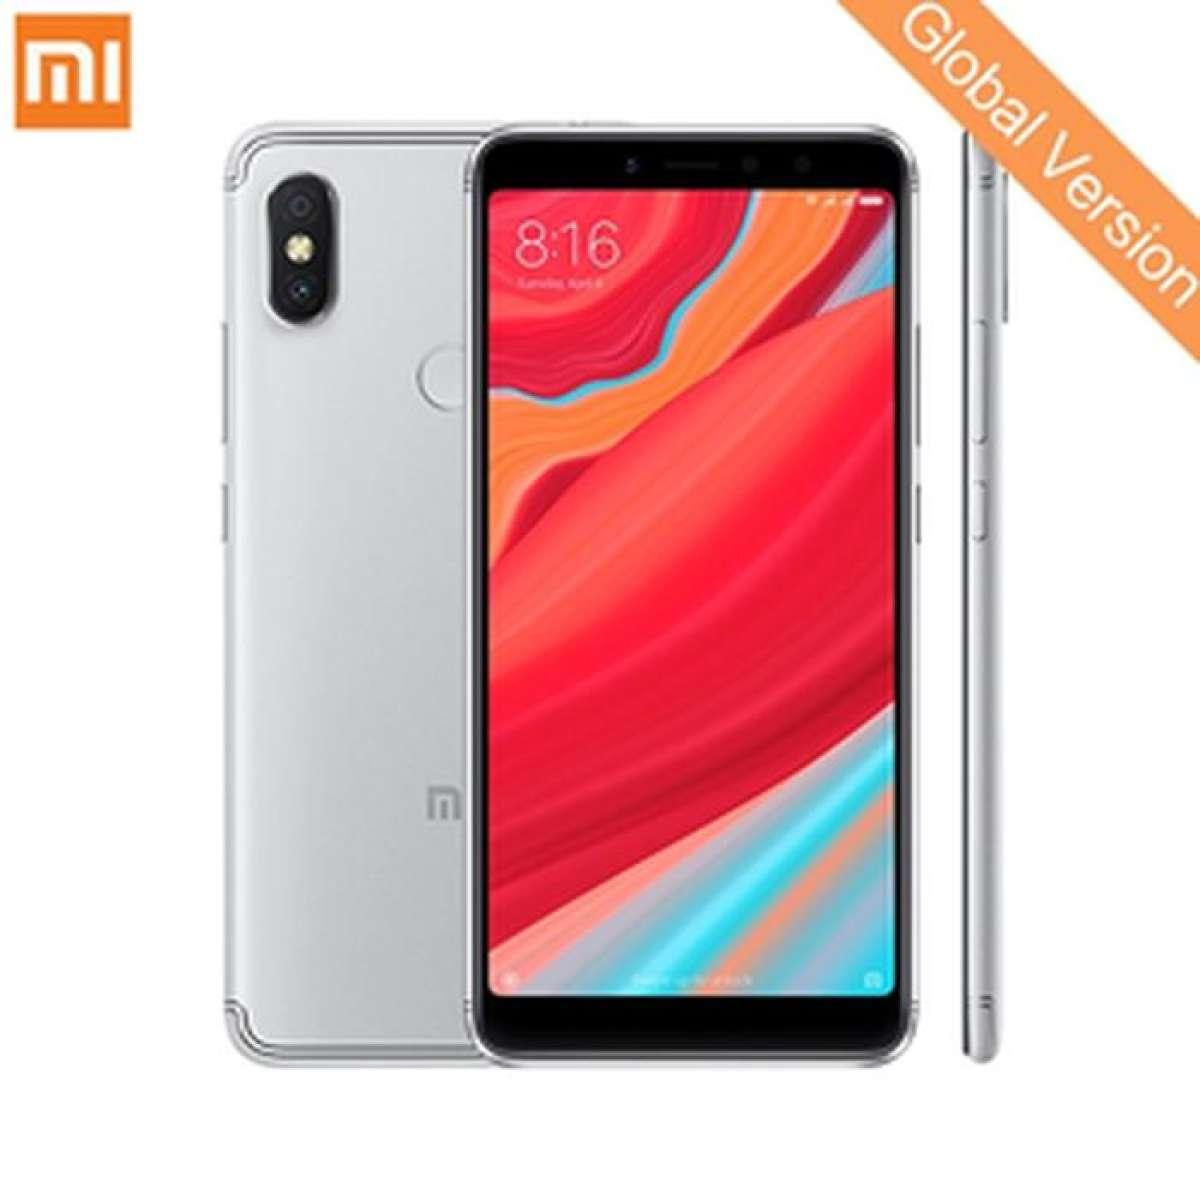 Jual Handphone Xiaomi Terbaru Redmi 5 Plus Ram 3gb Internal 32gb Blue Garansi Distributor S2 4 64gb Global Version